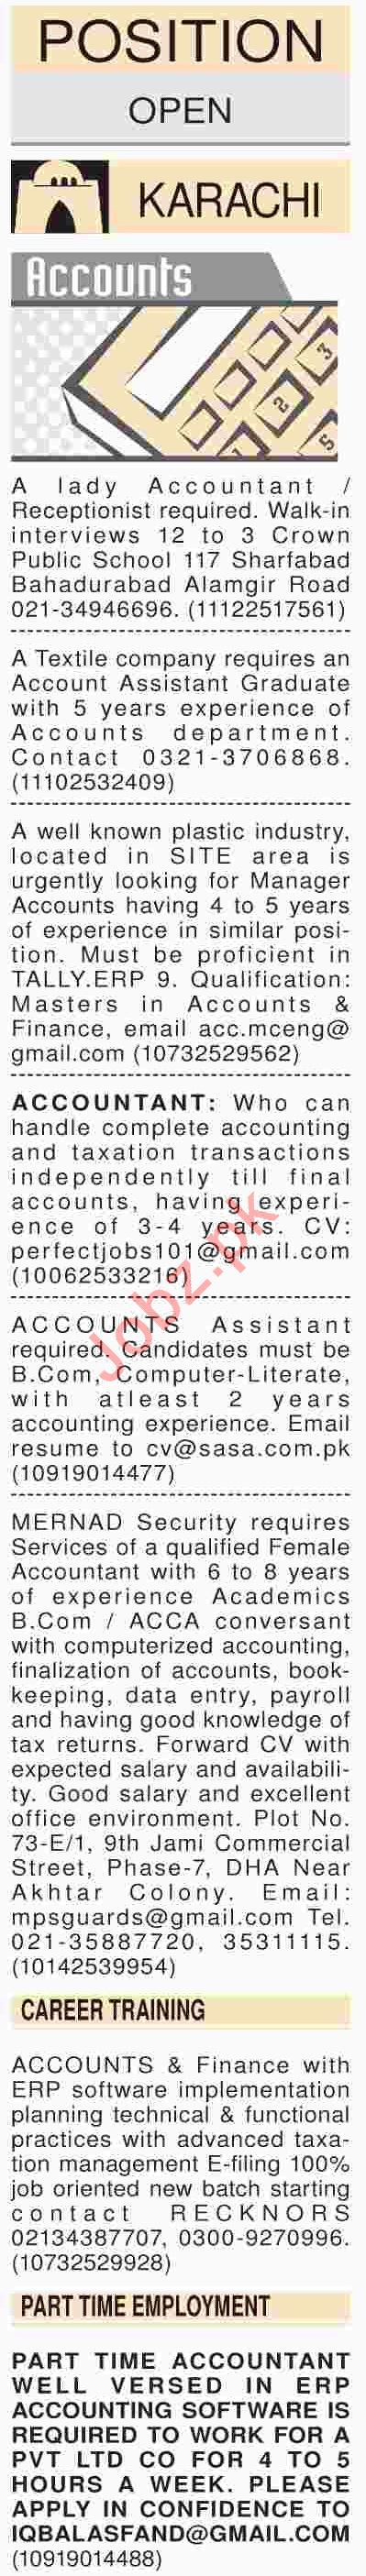 Dawn Sunday Classified Ads 31st March 2019 for Accounts